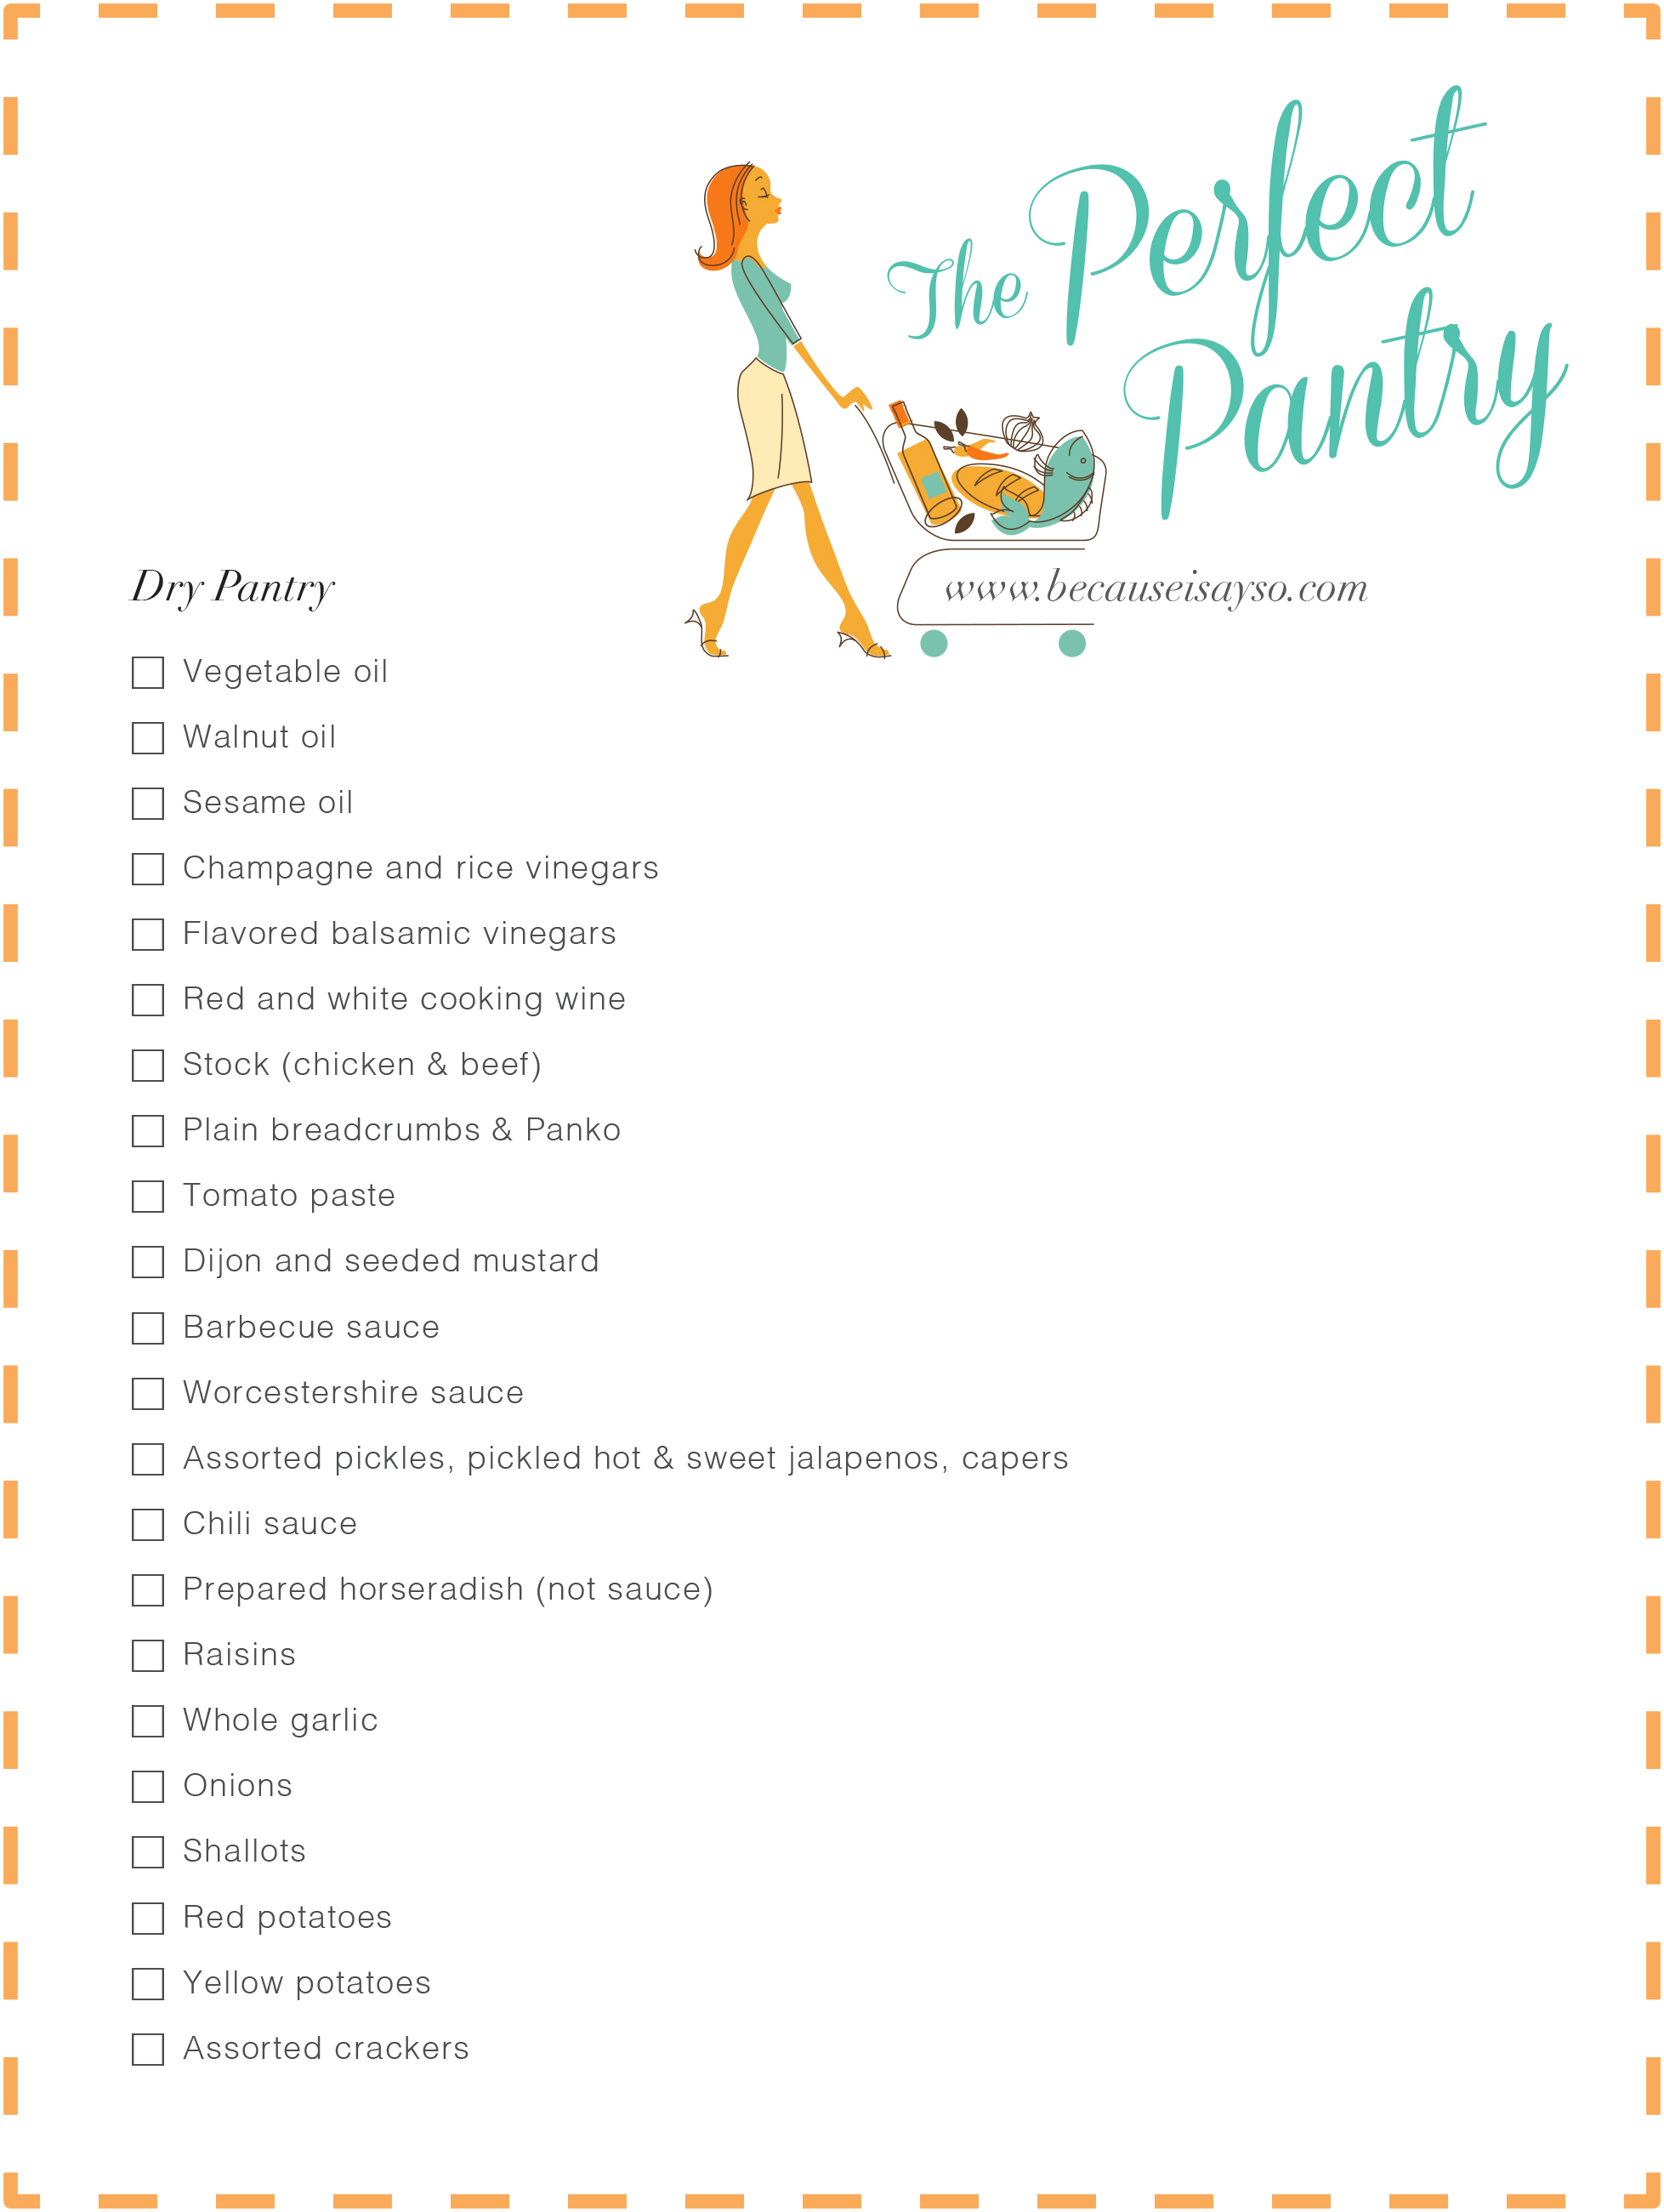 Perfect Pantry Shopping List Dry Pantry